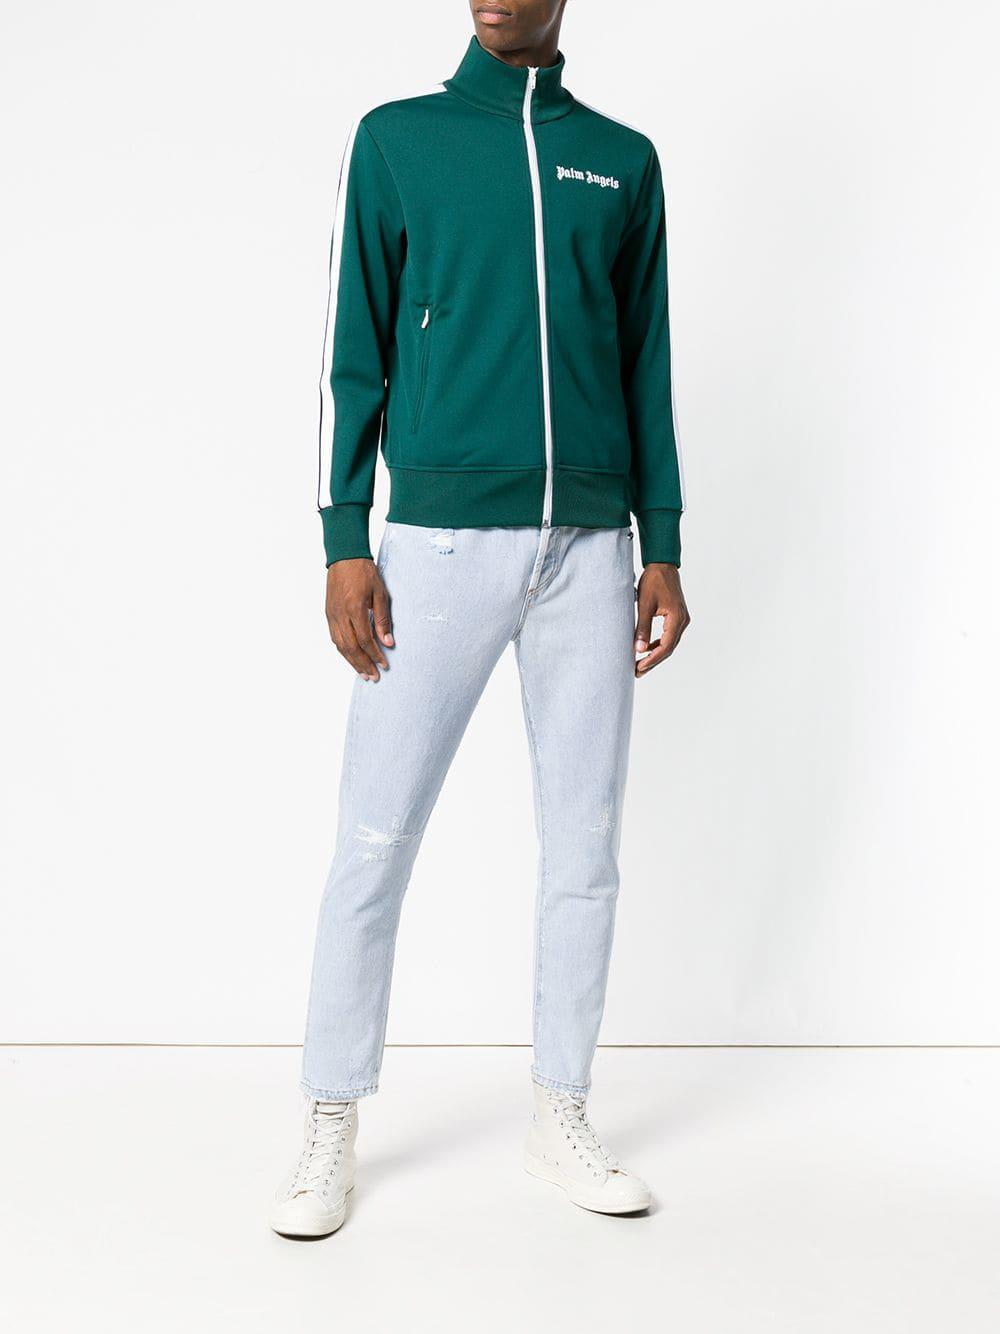 Palm Angels Classic Zip Track Jacket in Dark Green (Green) for Men